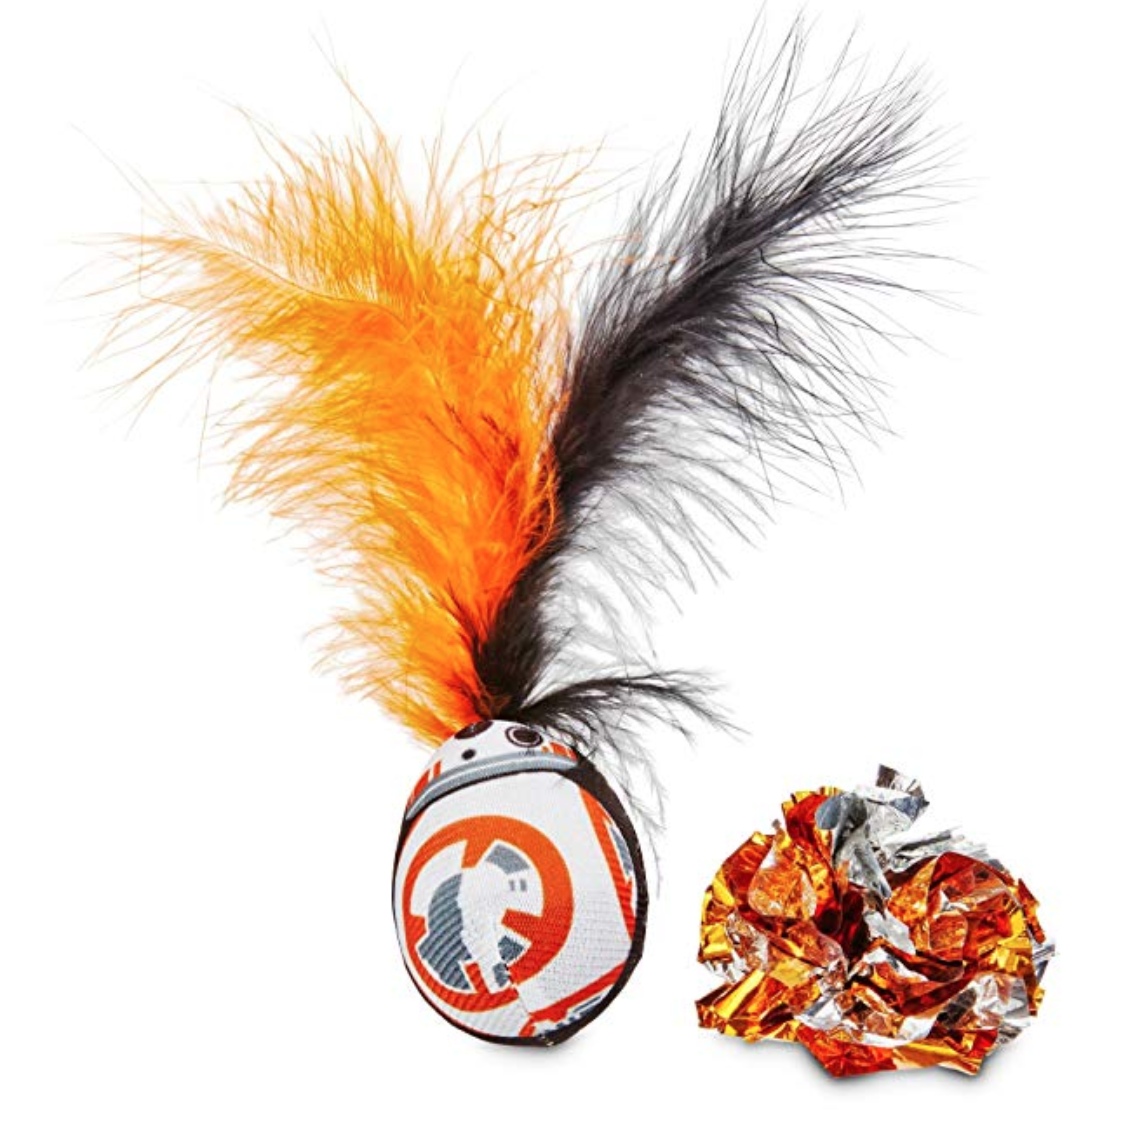 Star Wars BB-8 Wobble and Crinkle Ball Cat Toy